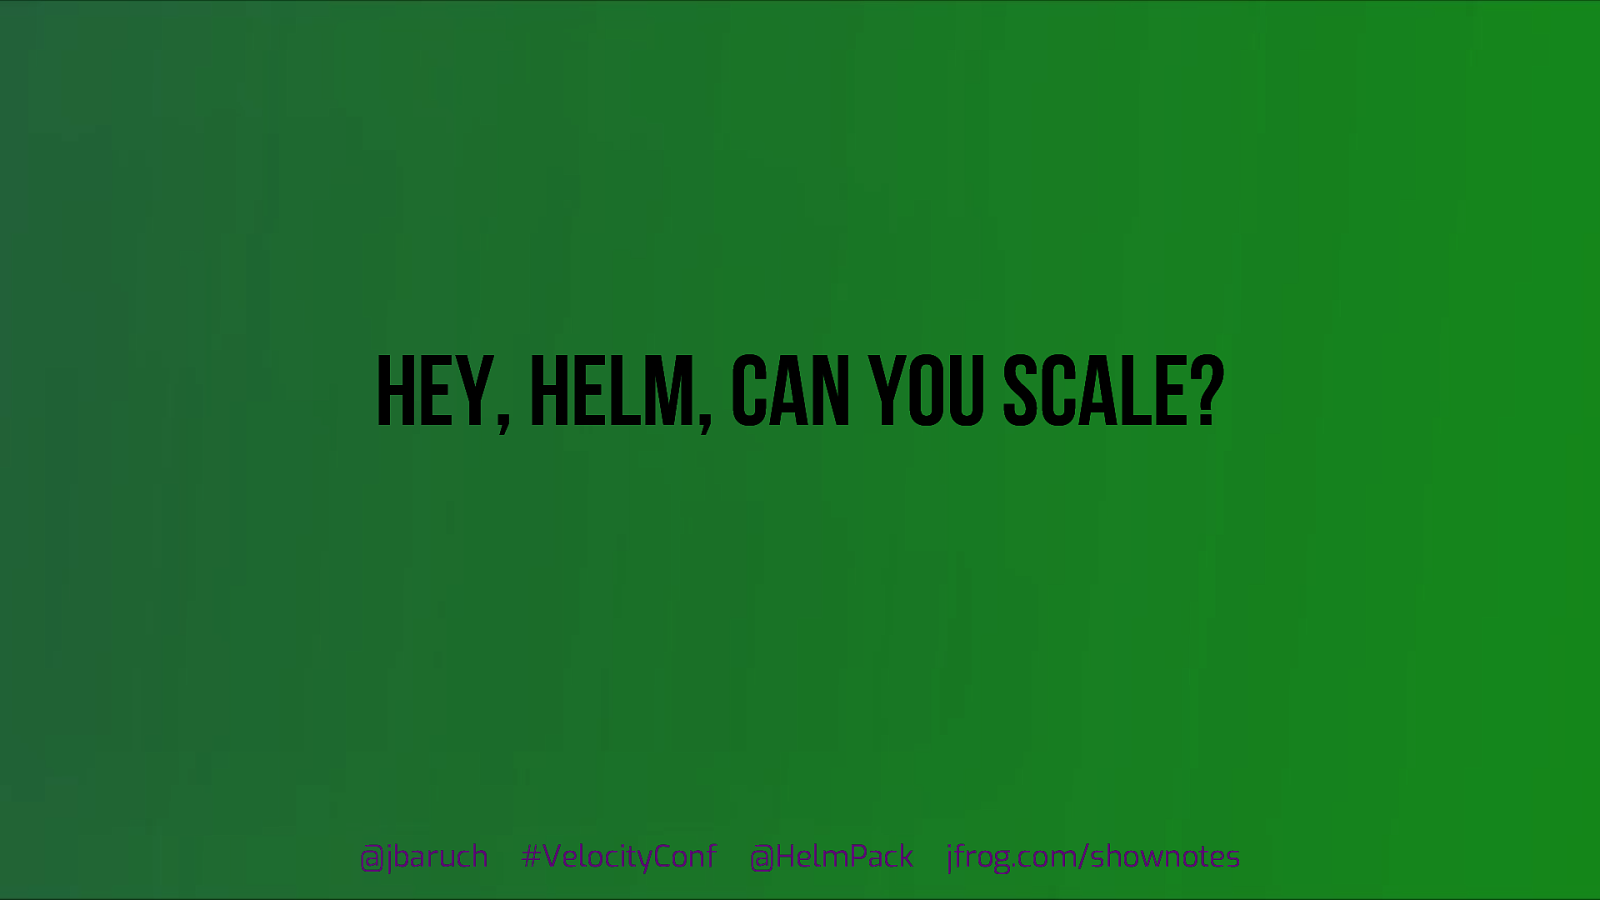 Hey, Helm, can you scale?